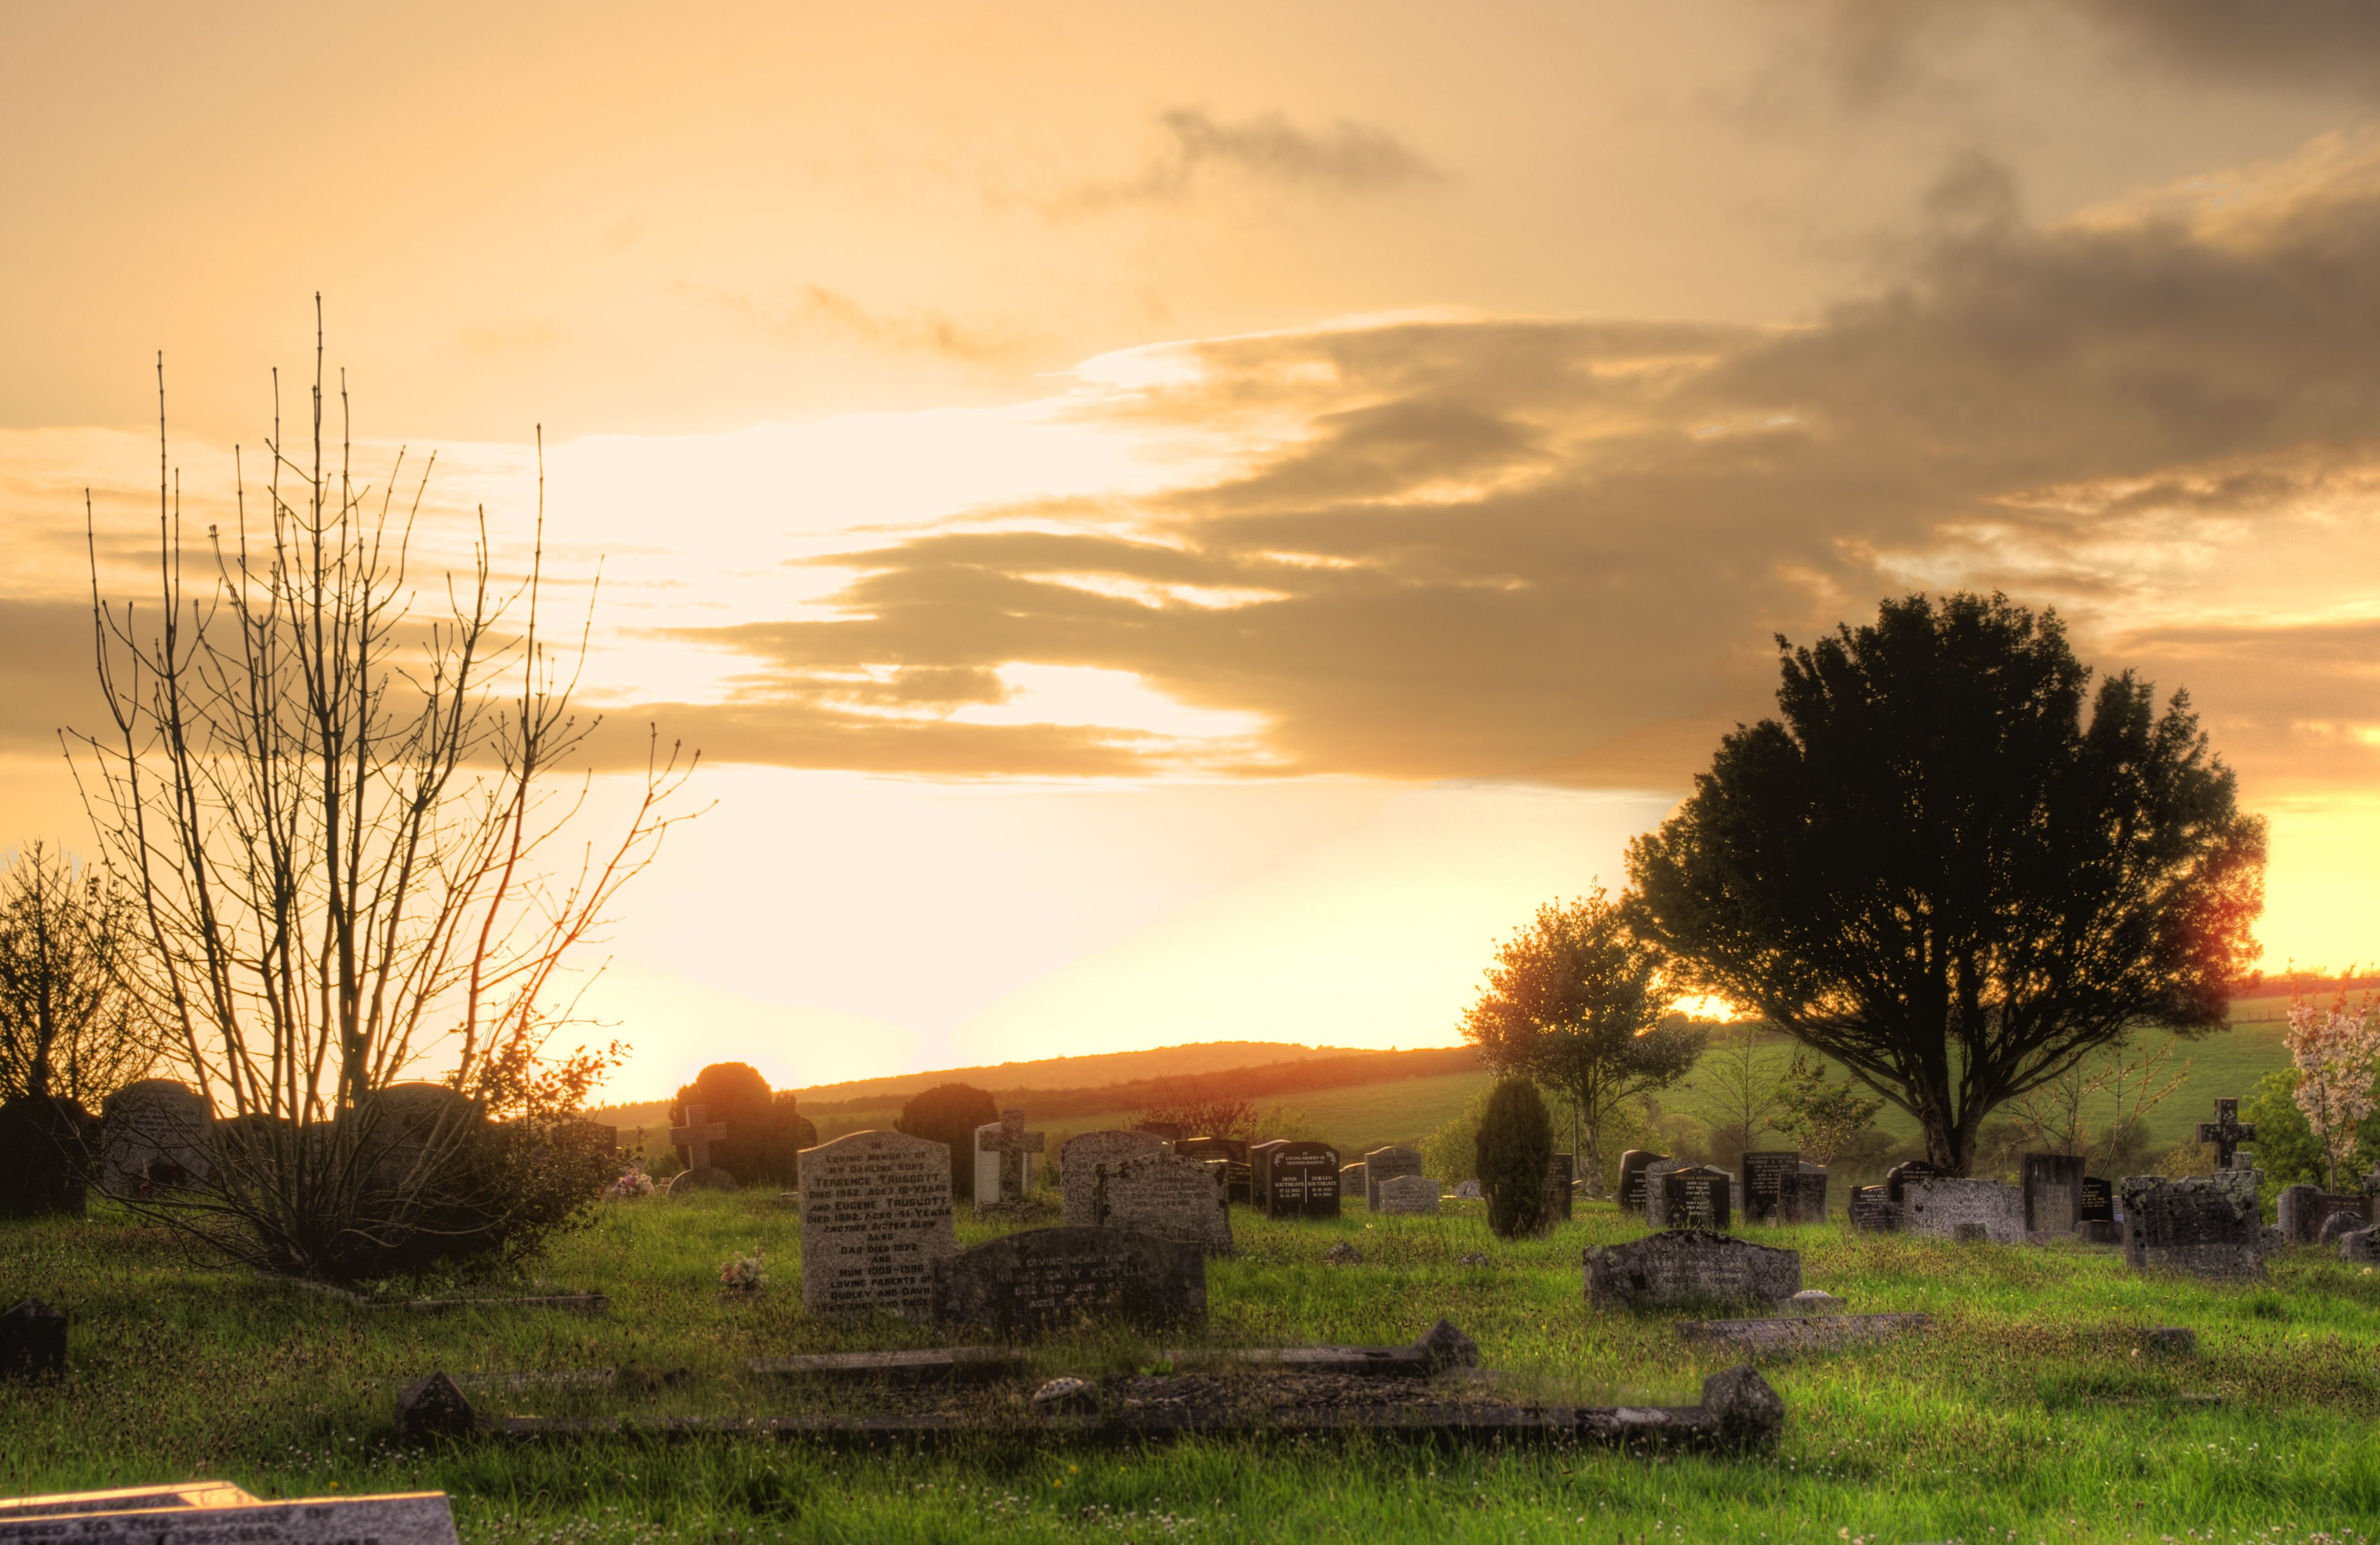 HDR at the new cemetary. Added a slight sun glare